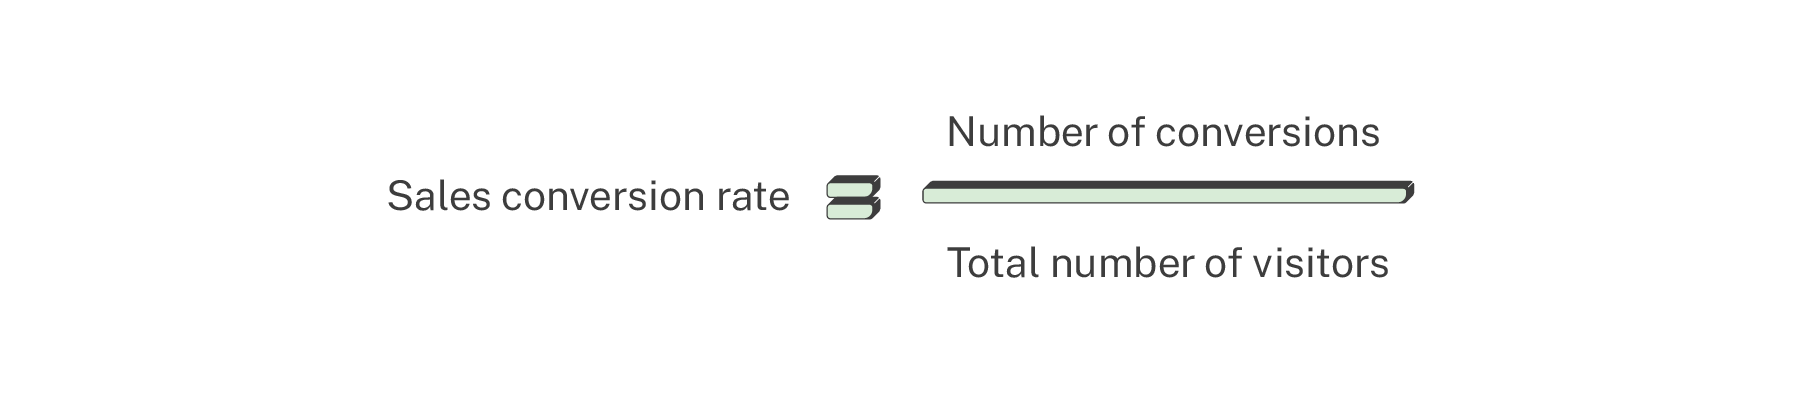 sales conversion rate calculation ecommerce